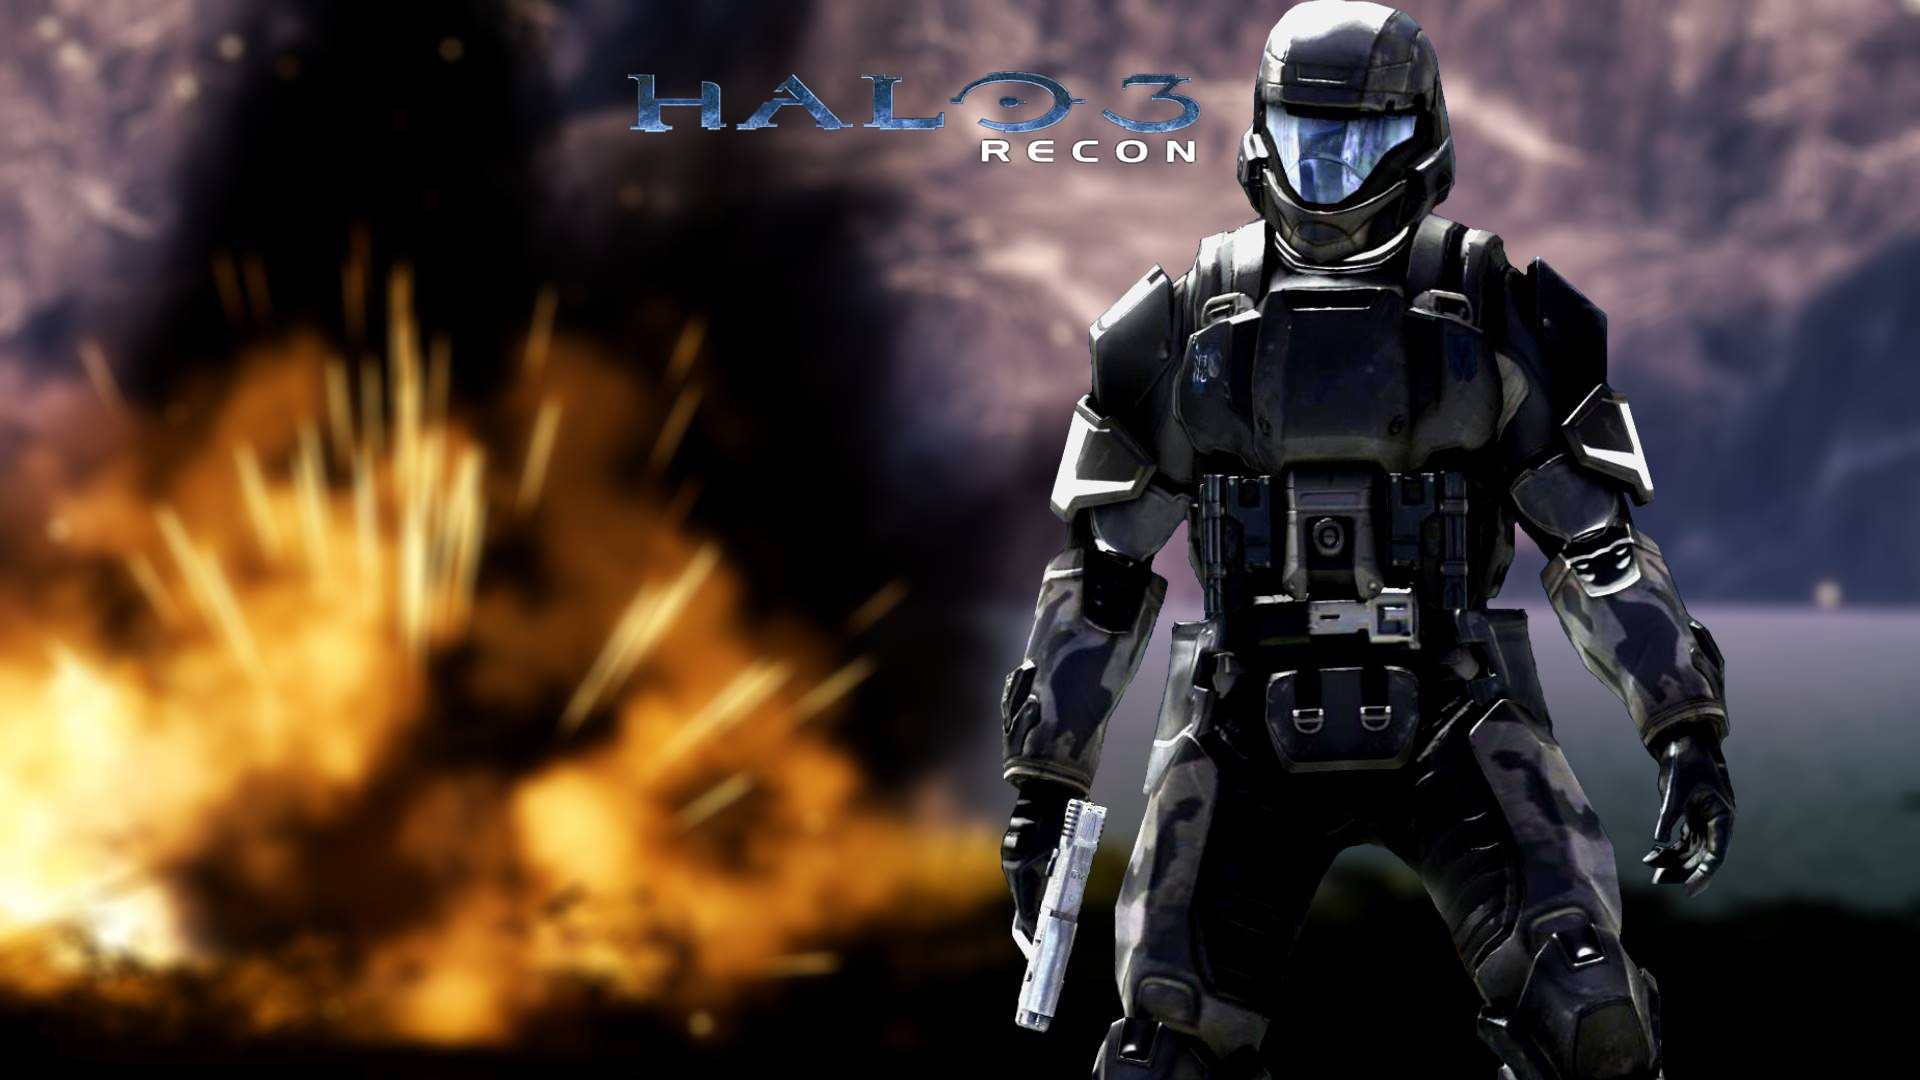 halo 3 recon 1 submitted by desolent halo 3 odst